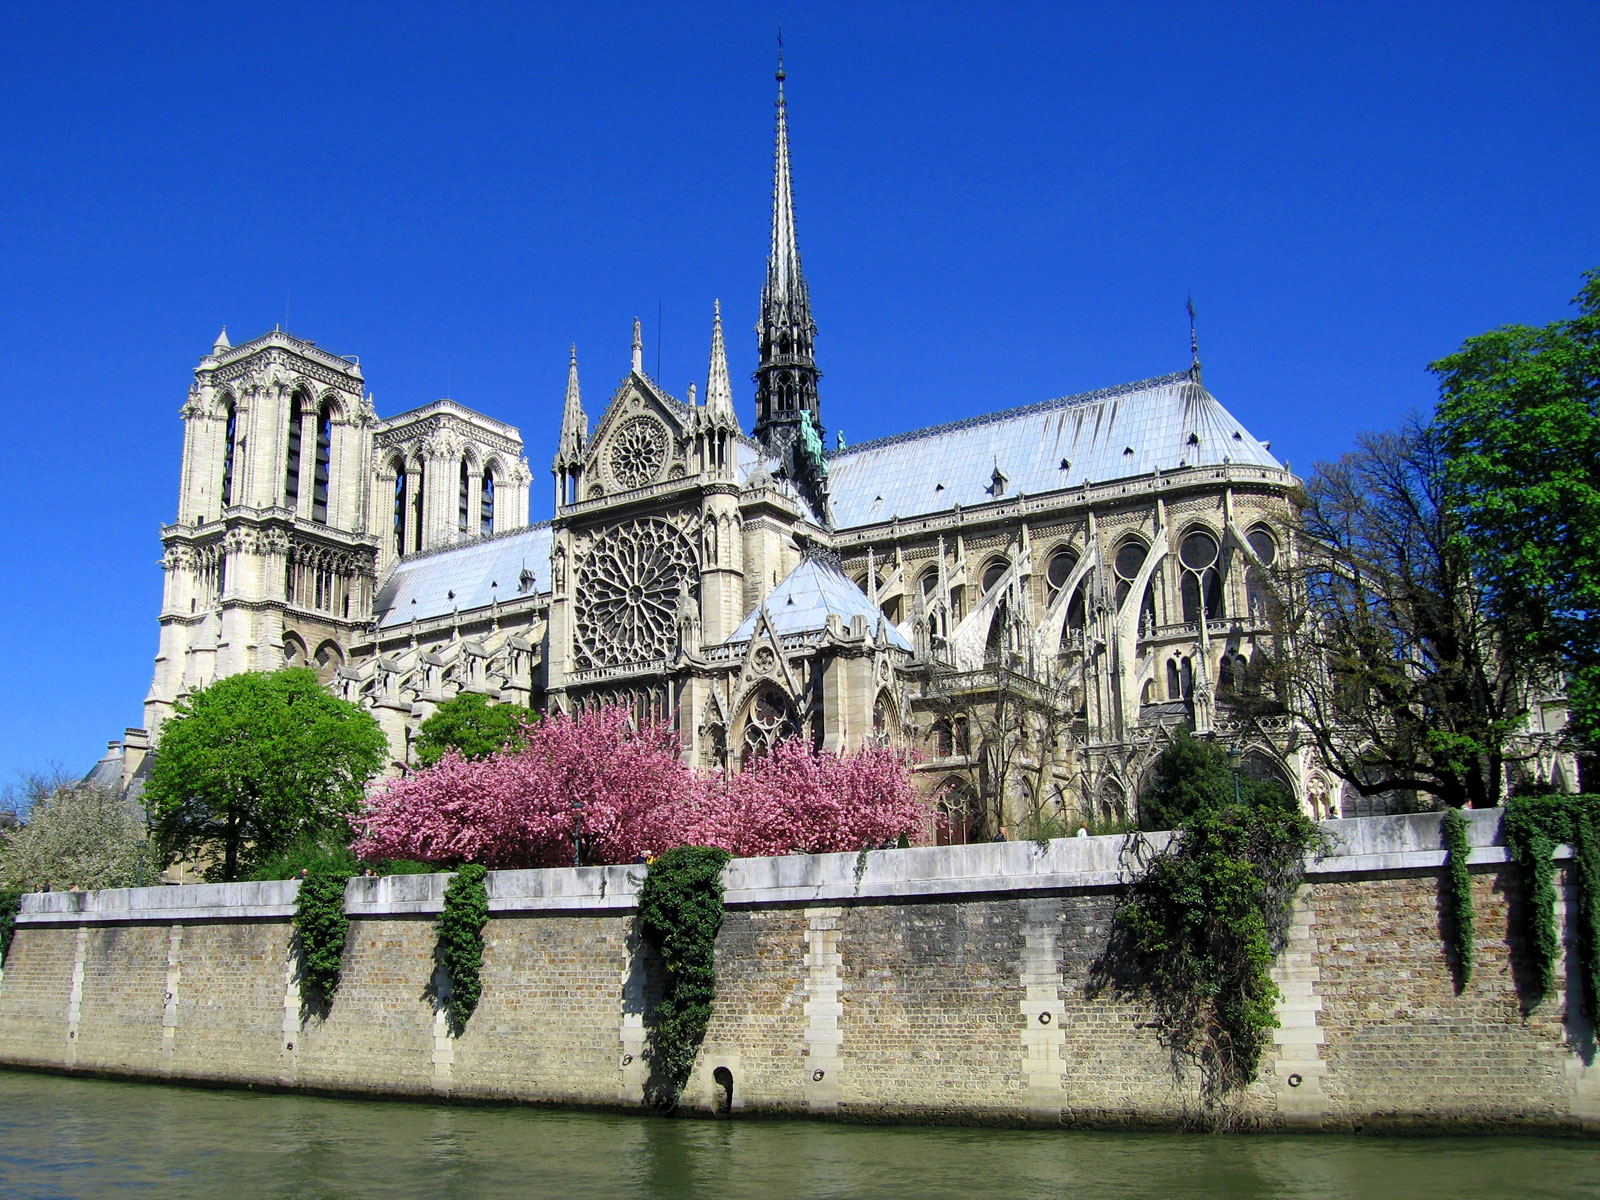 http://images.fanpop.com/images/image_uploads/Notre-Dame-in-Paris--France-europe-541813_1600_1200.jpg